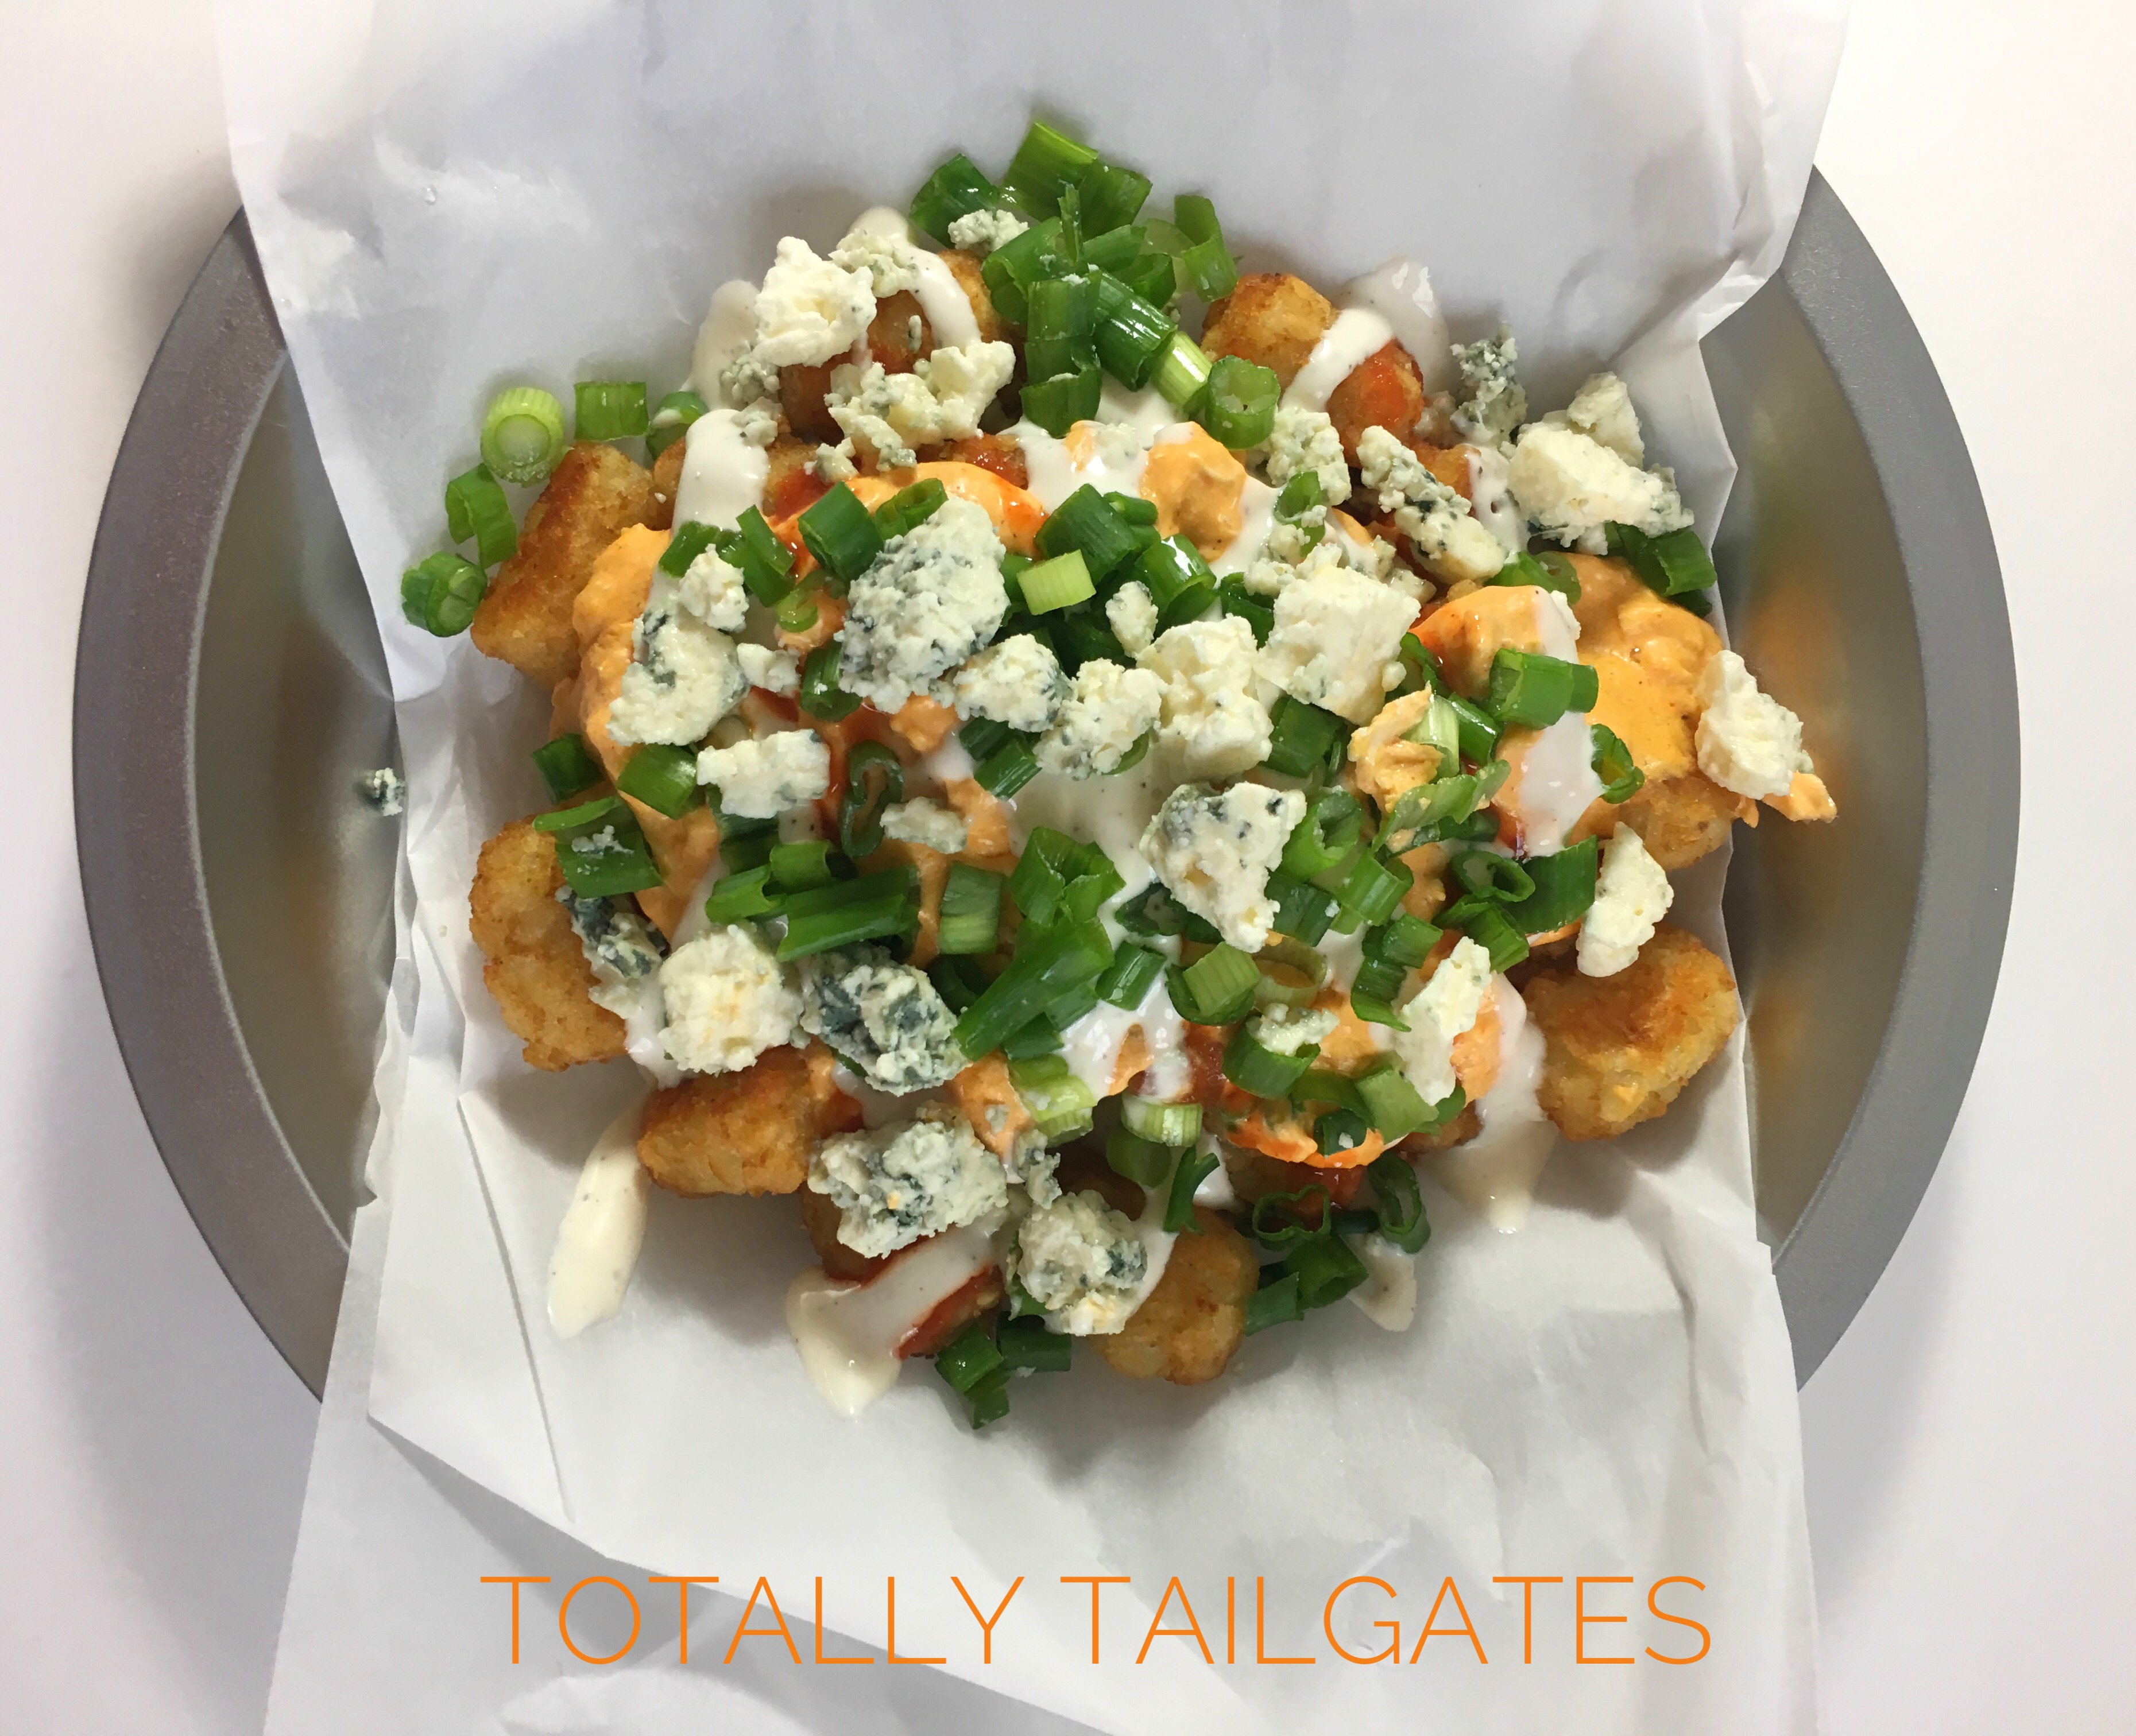 Loaded Buffalo Chicken Tater Tots for tailgate parties- great game day recipe!